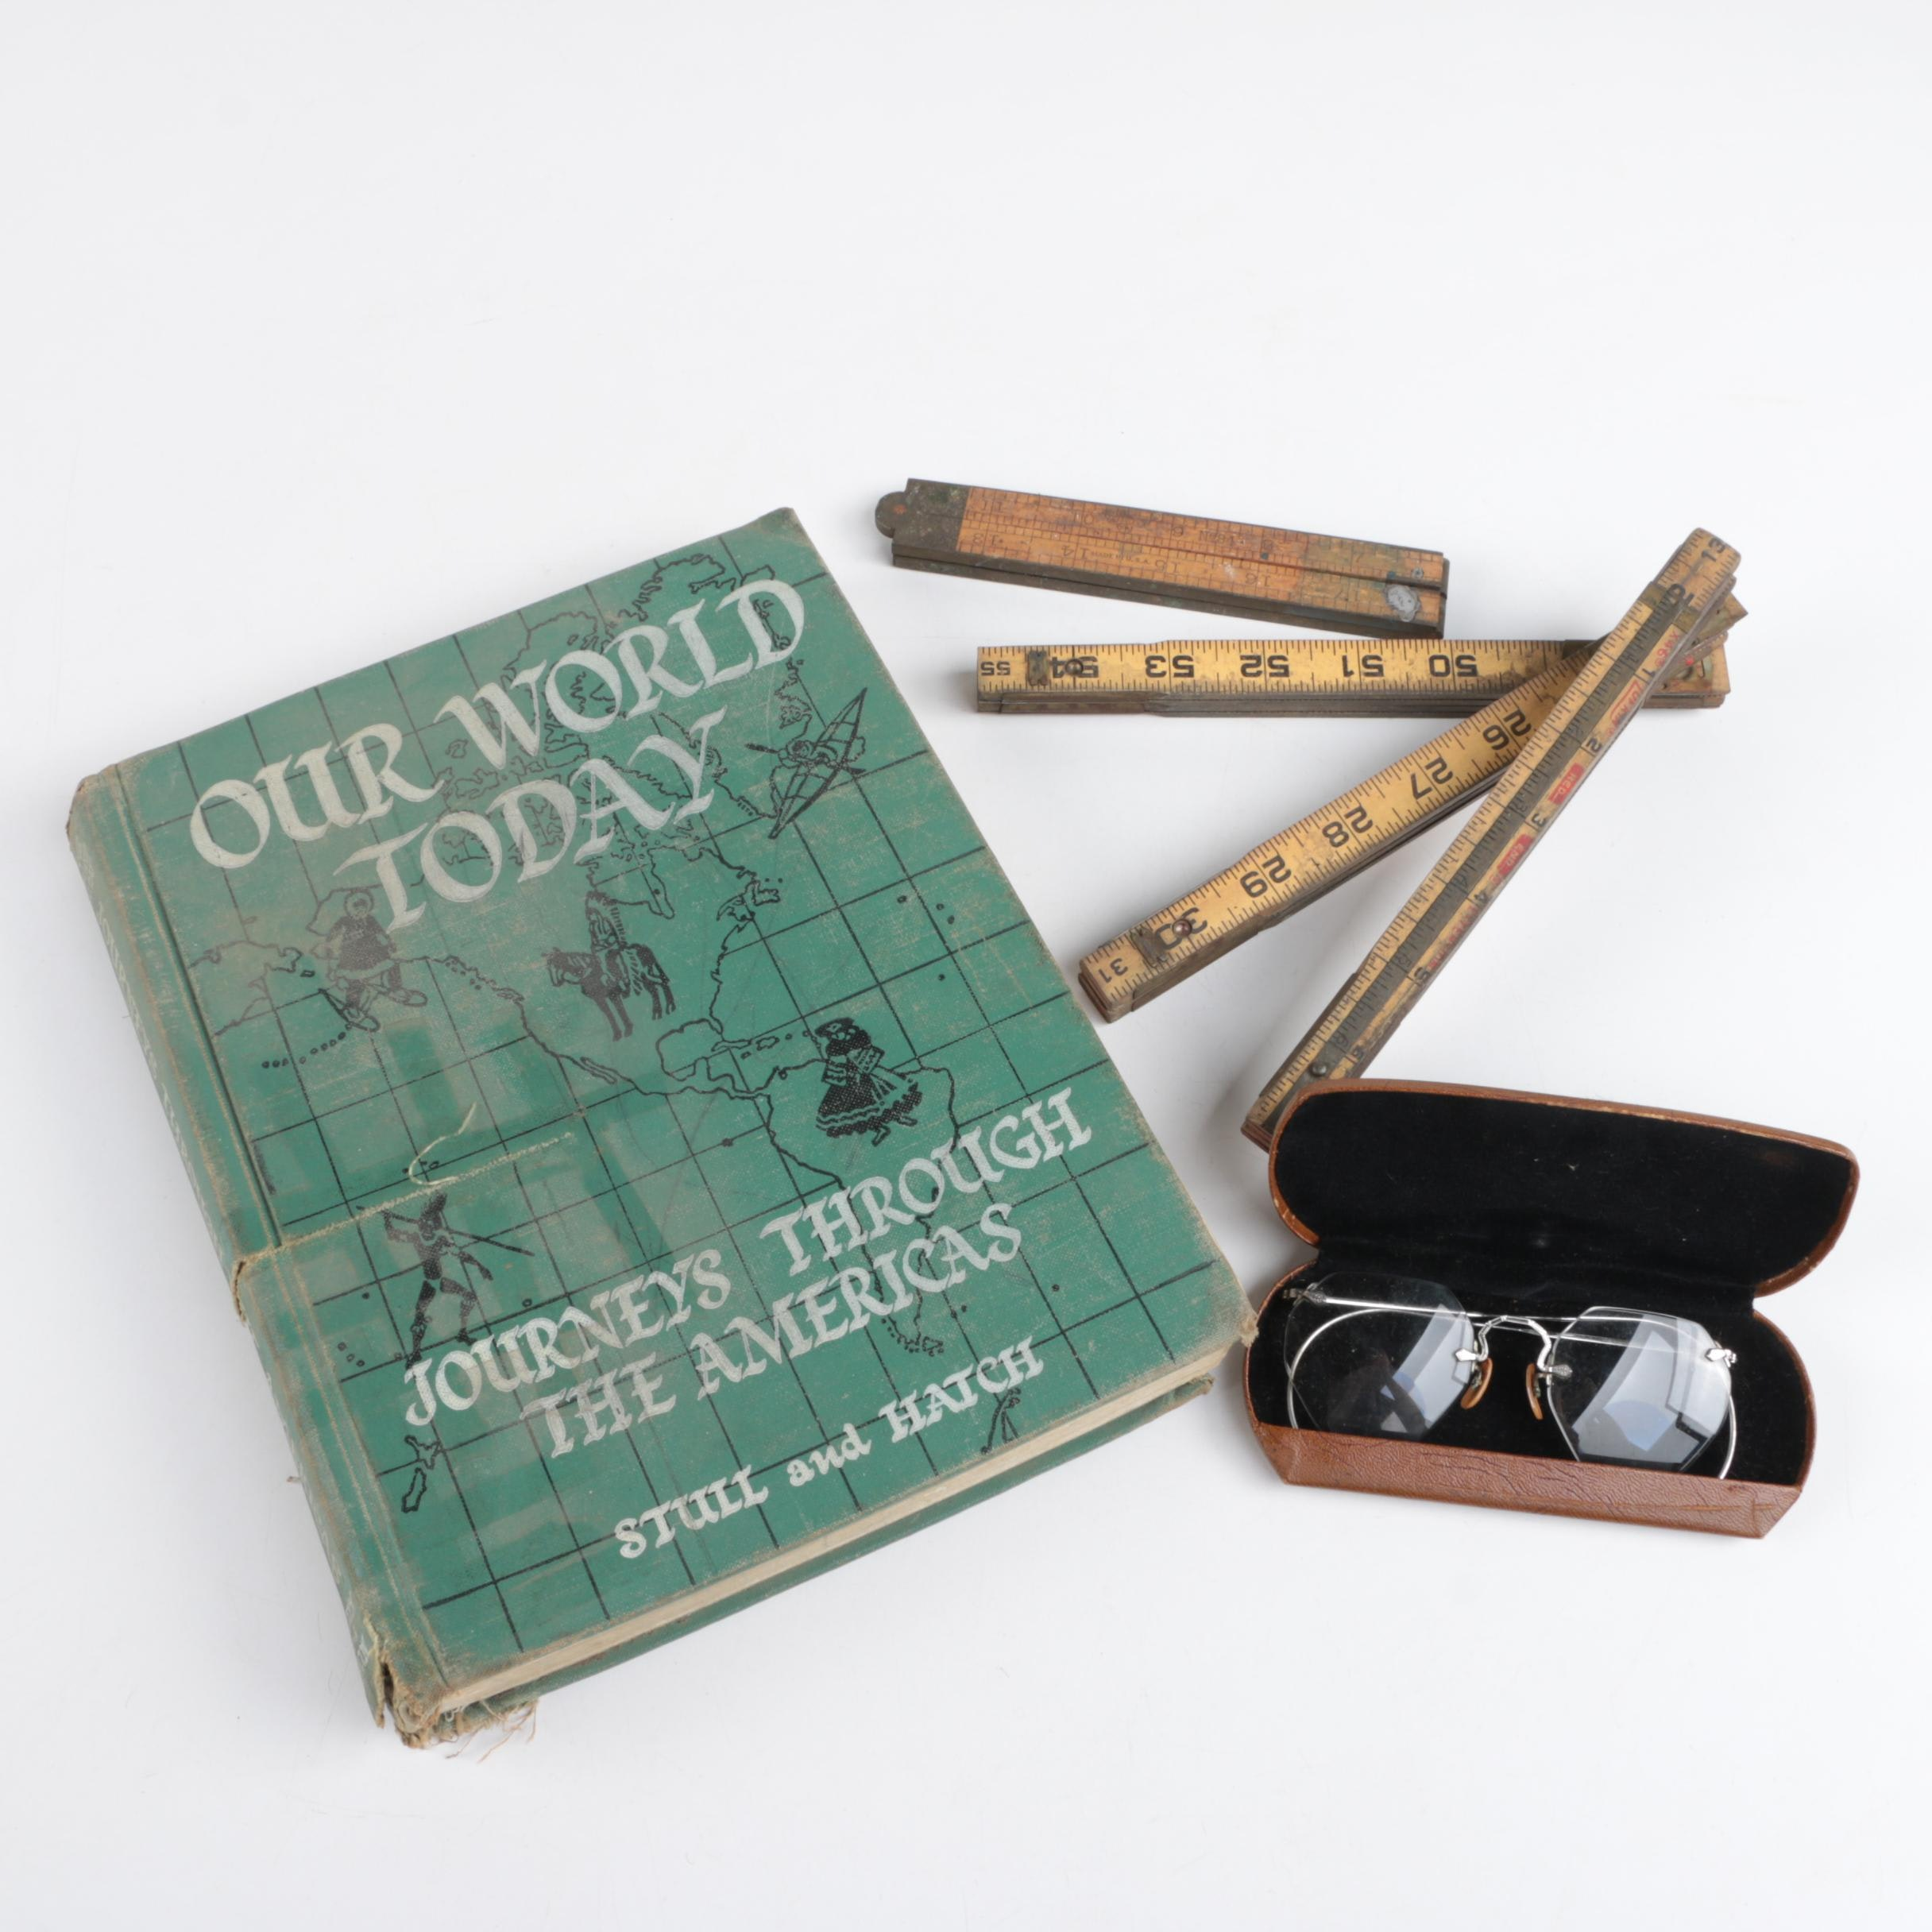 """Our World Today"" History Book with Rulers and Spectacles"